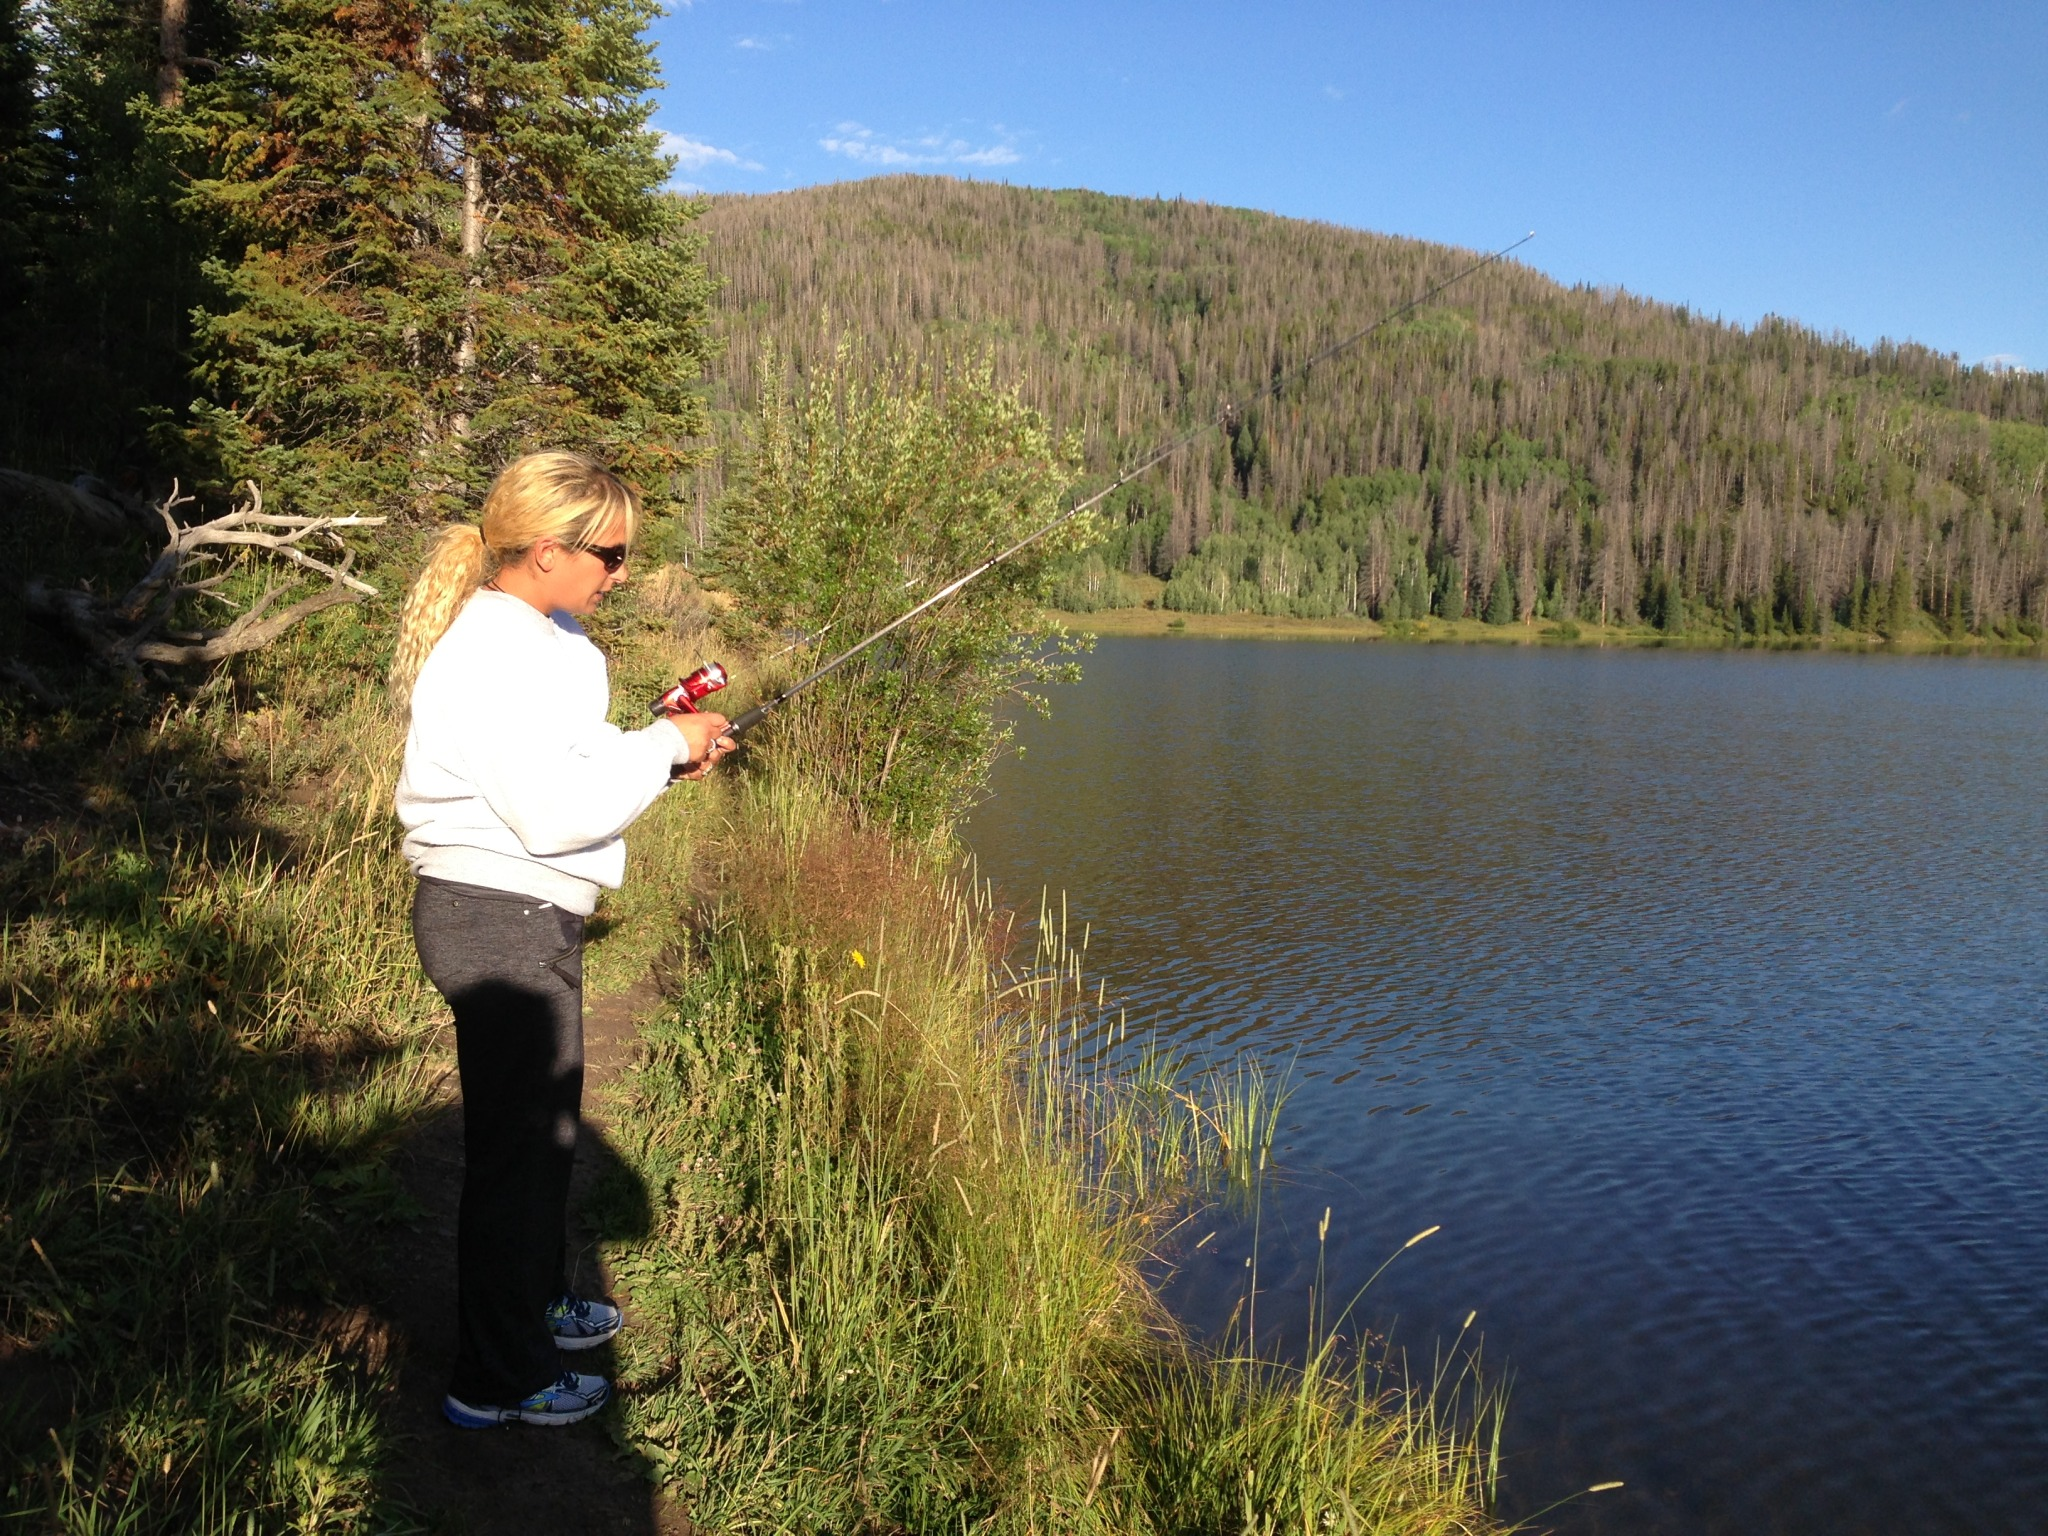 Fishing at Pearl Lake, Colorado